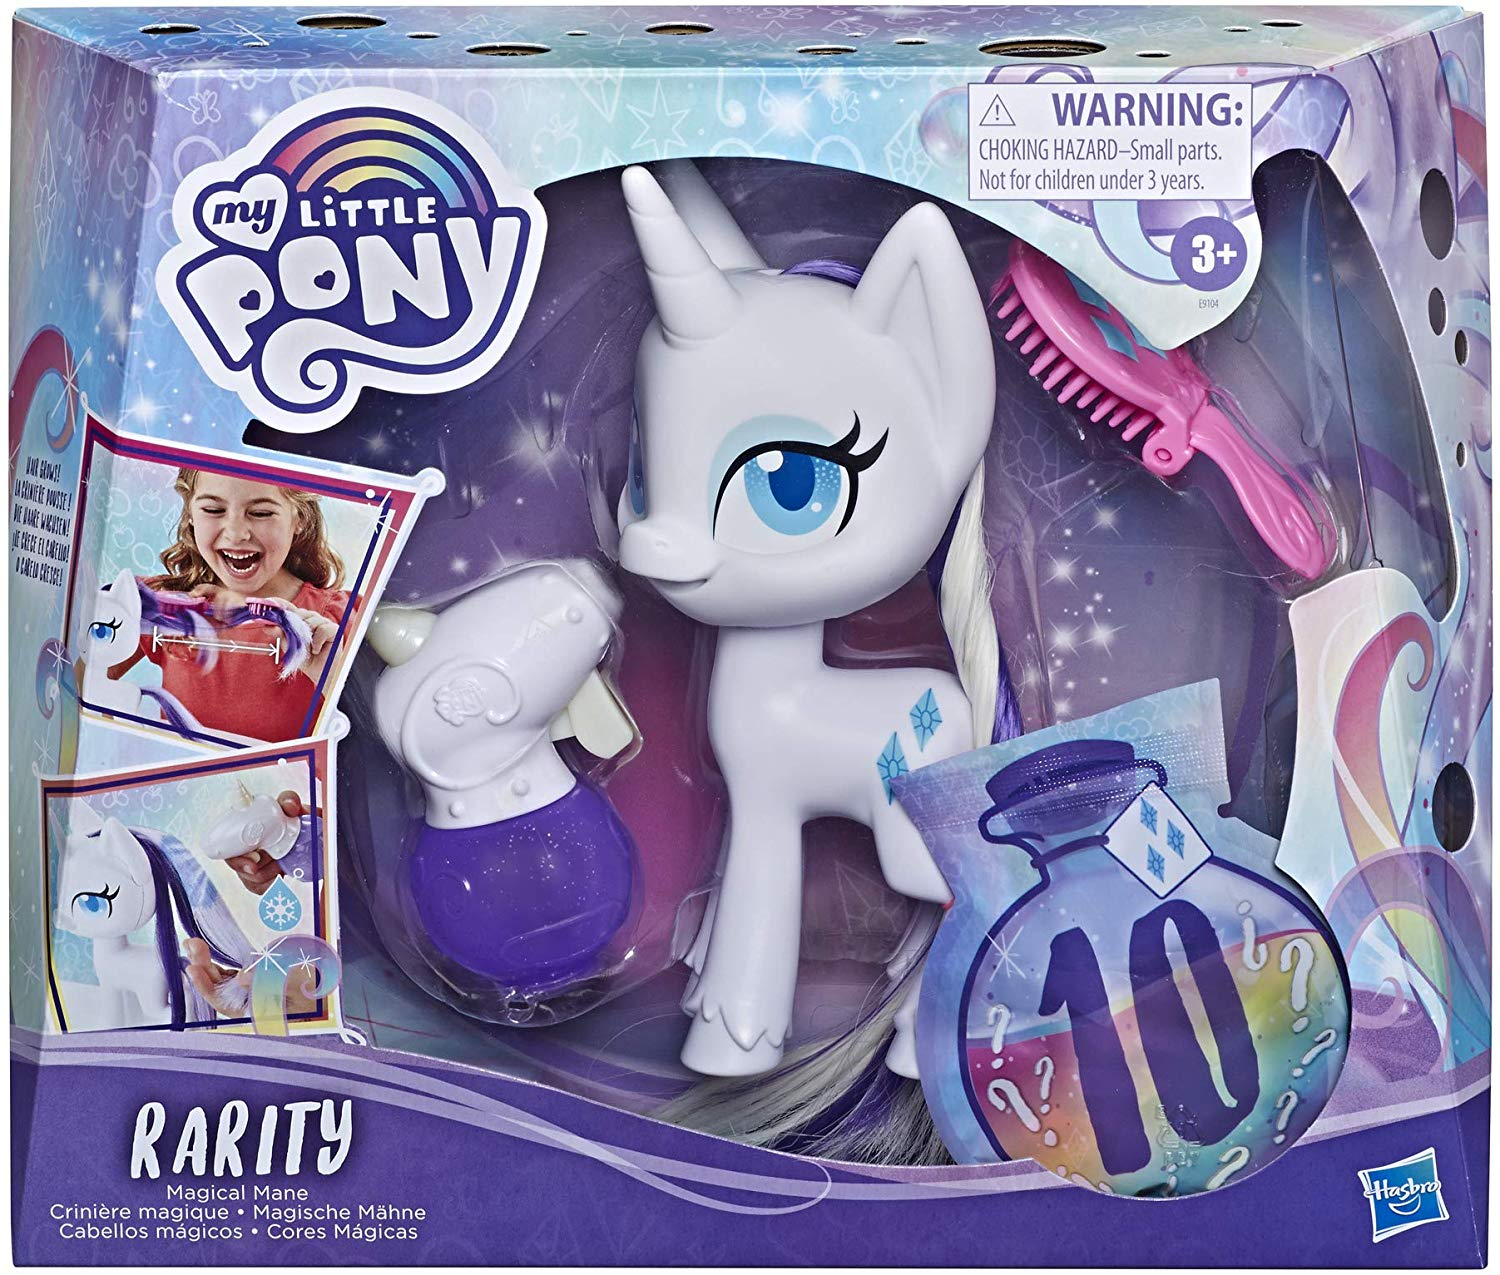 My Little Pony is launching a new animated series and toy line 12